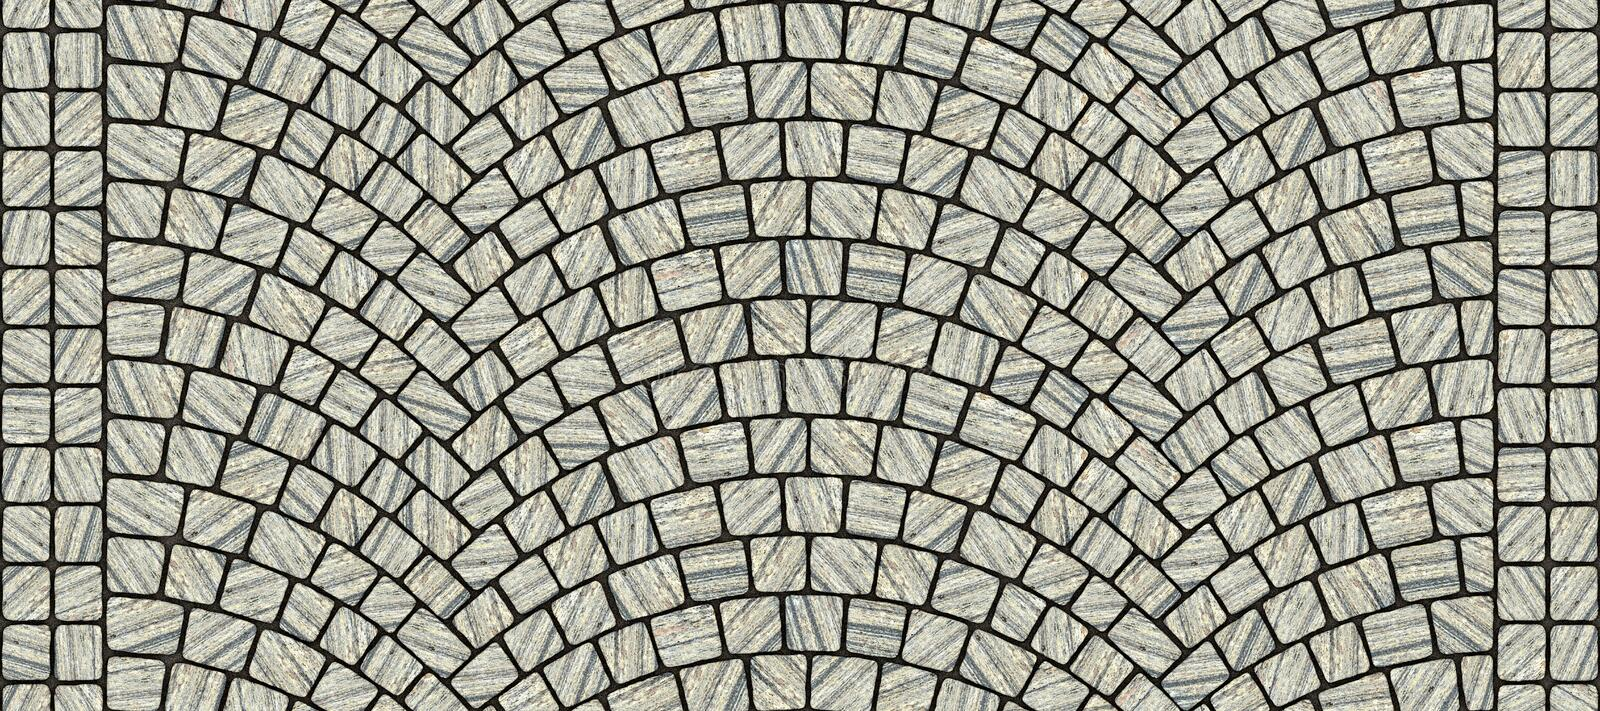 Road curved cobblestone texture 029. Cobblestone arched pavement road with edge courses at the sidewalk. Seamless tileable repeating 3D rendering texture royalty free illustration